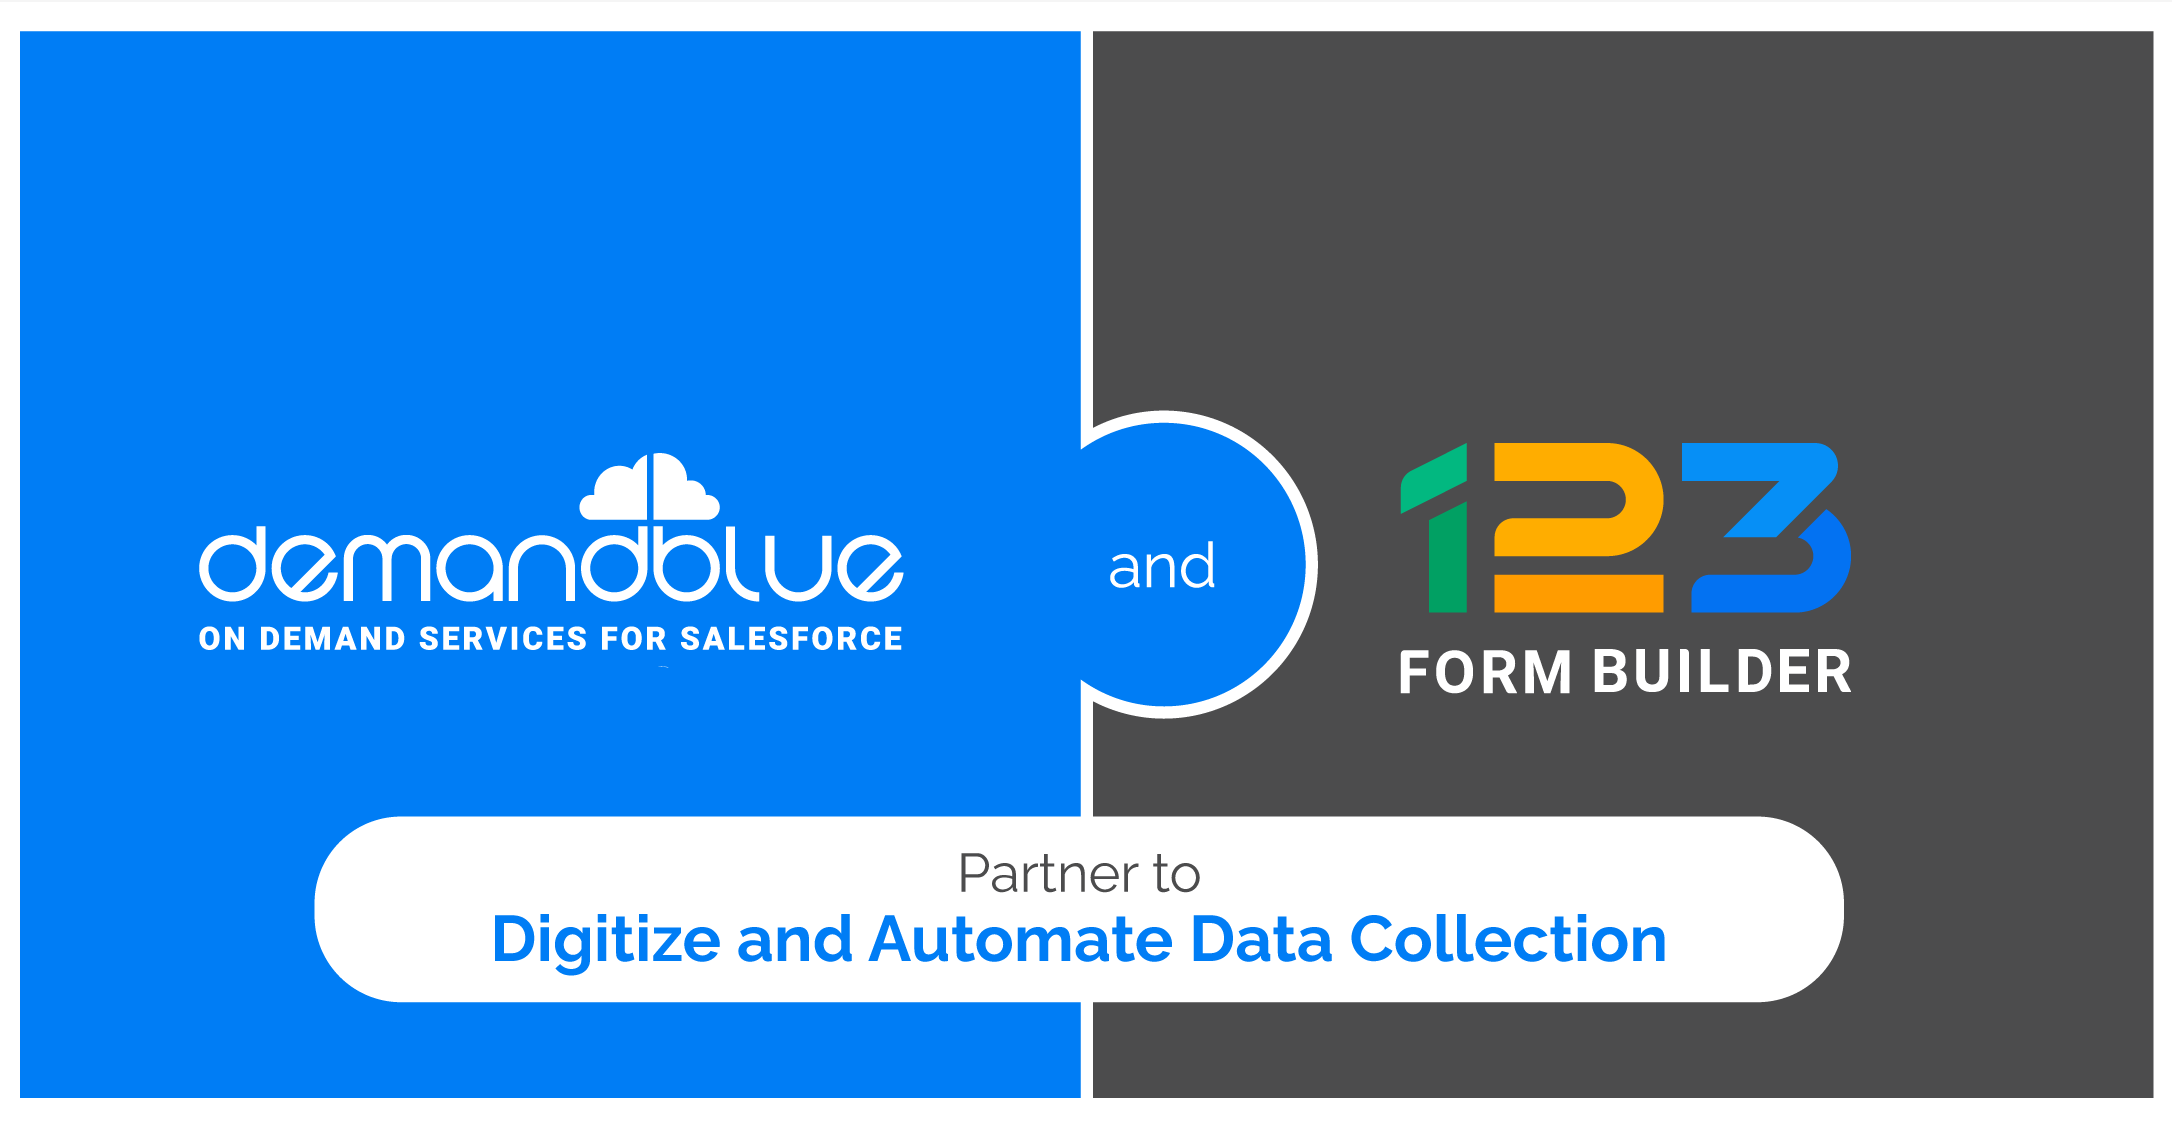 DemandBlue announces its partnership with 123FormBuilder